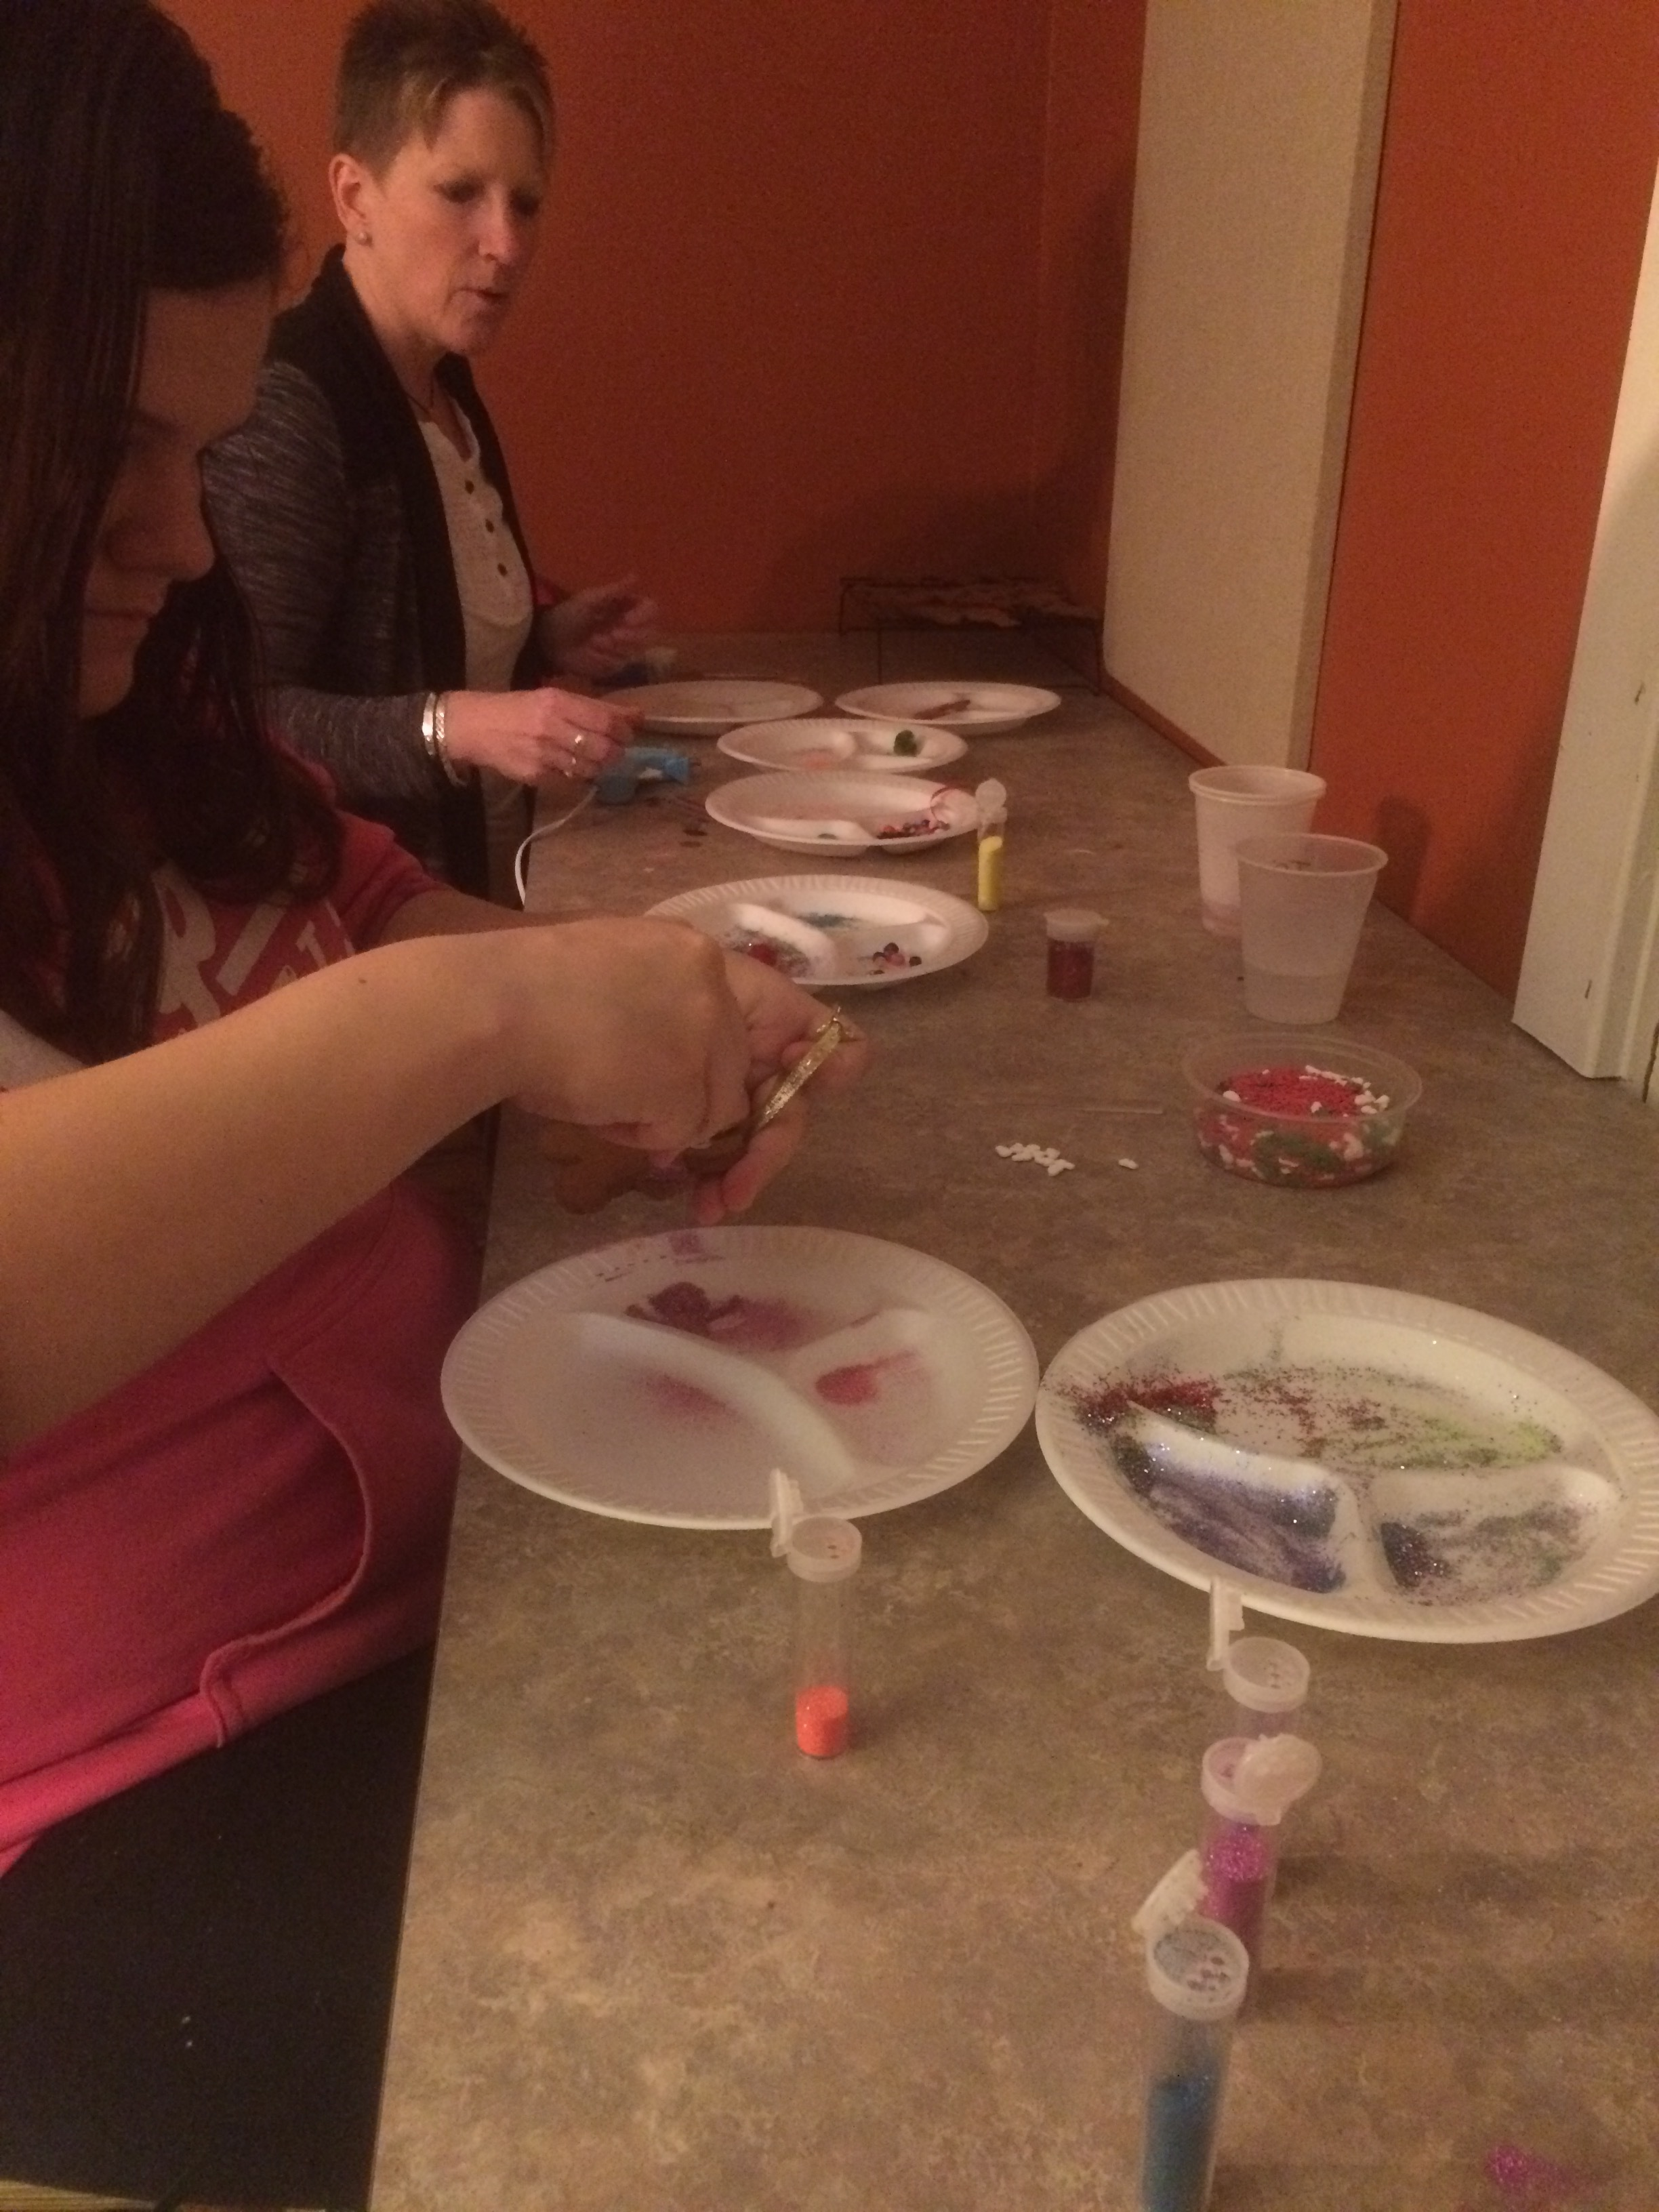 Decorating homemade ornaments.